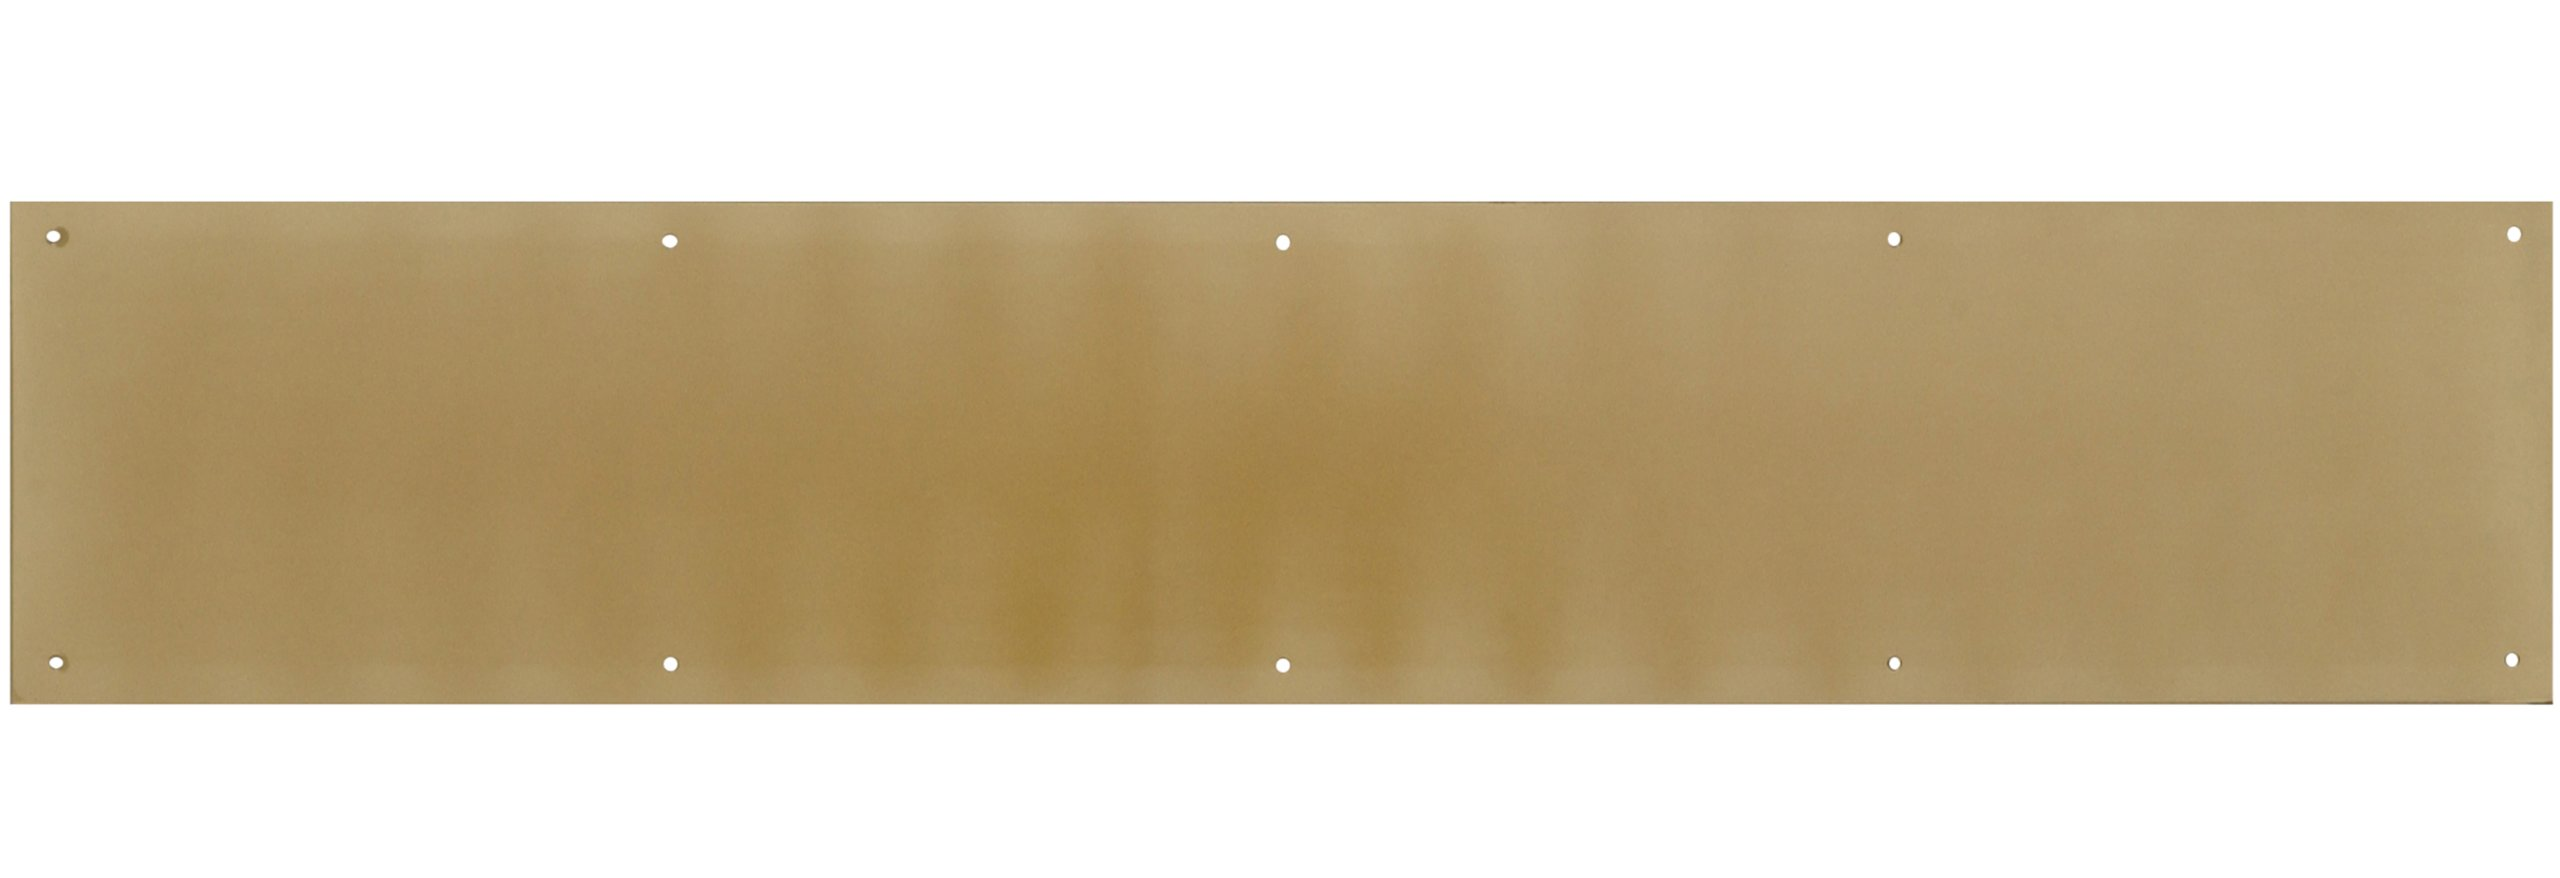 The Hillman Group 852735 6 x 30'' Solid Brass Kick Plate - Bright Brass Finish 1-Pack